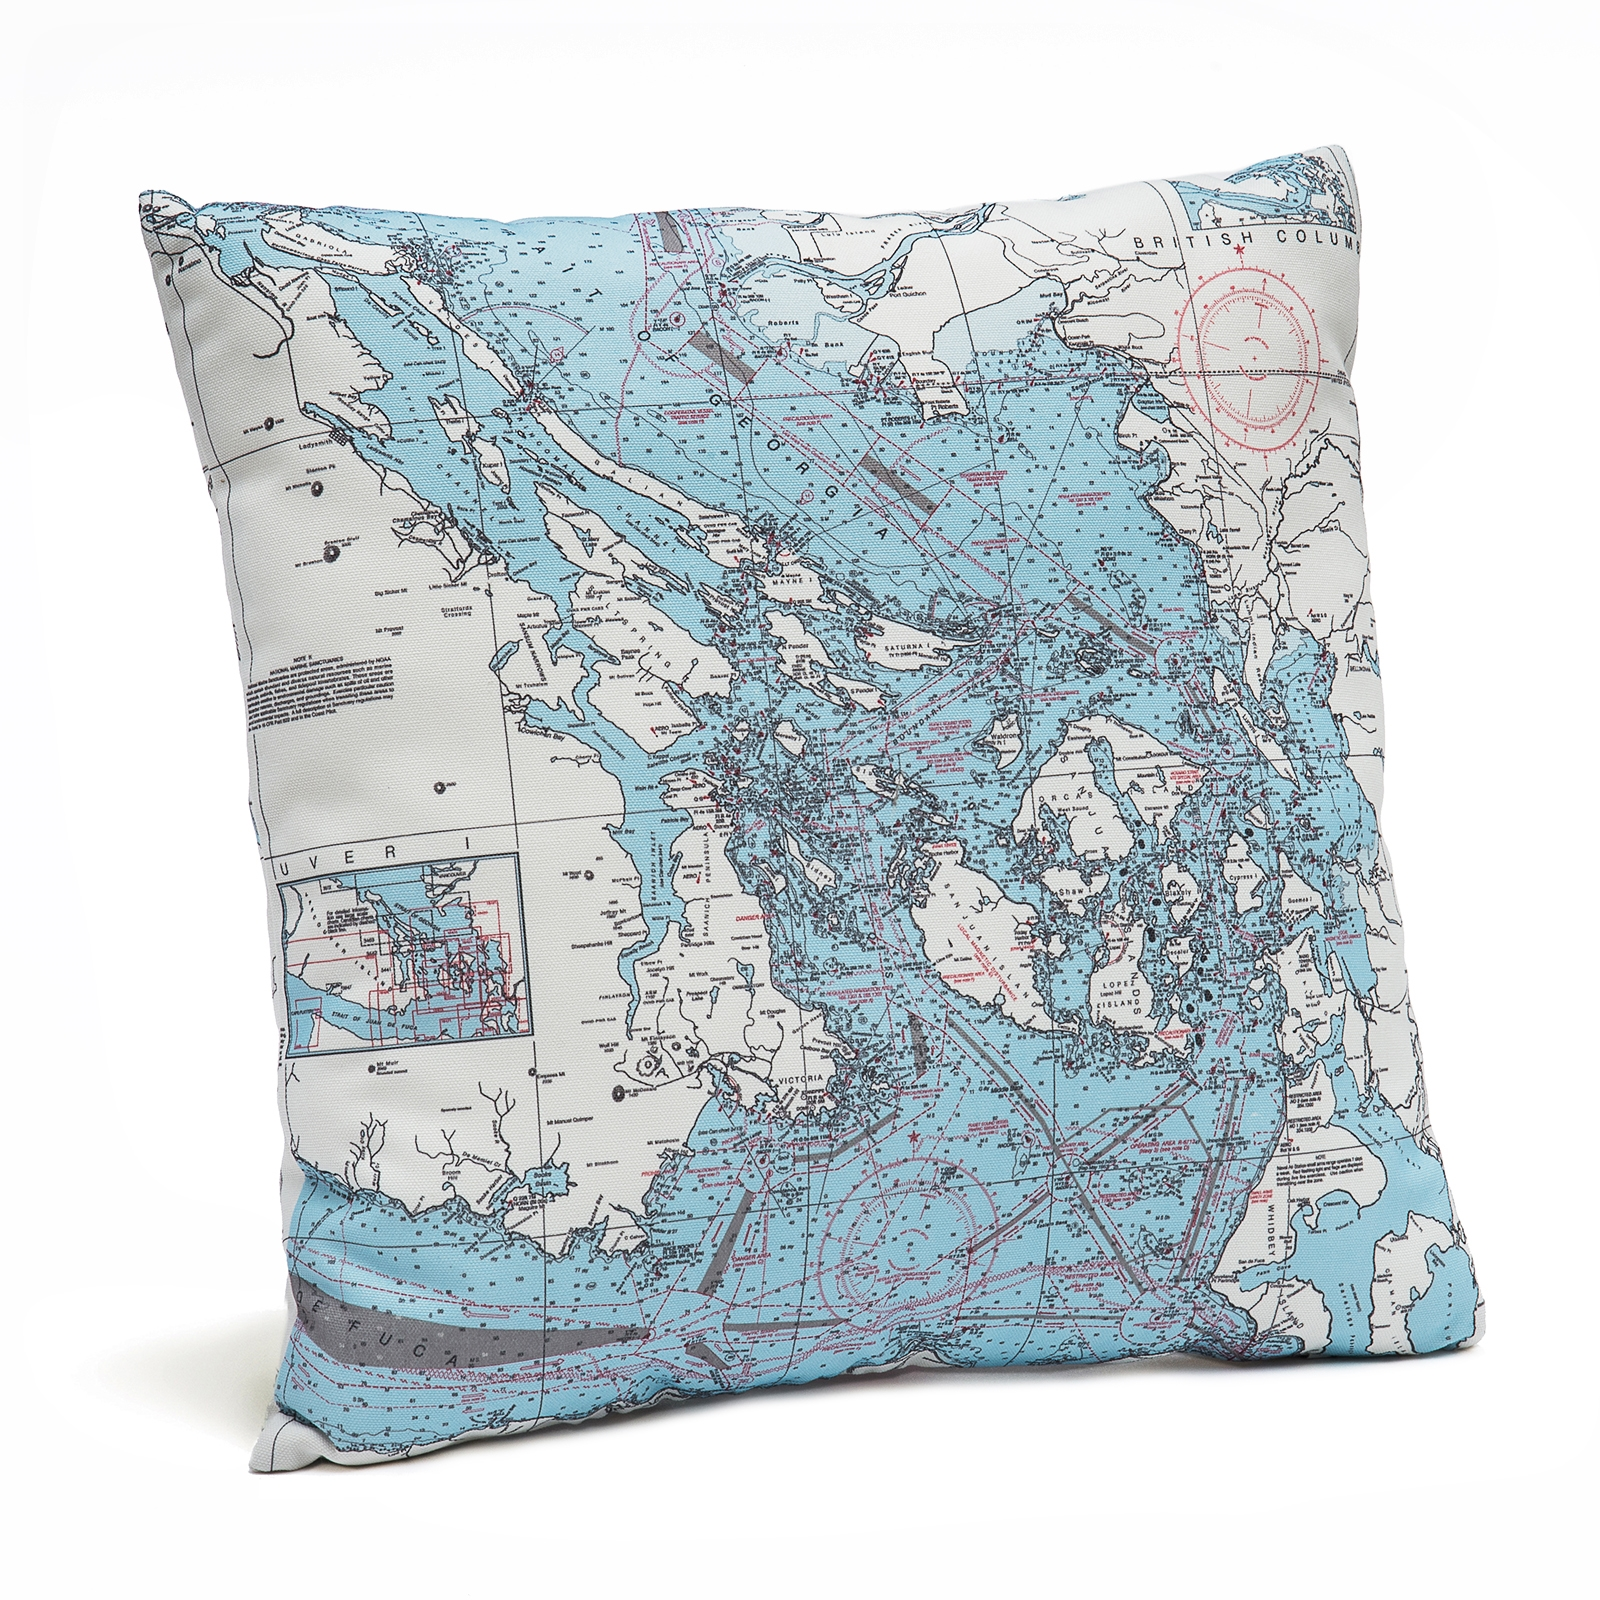 Worksheet. San Francisco Bay Pillow Map from Carved Lake Art Nautical Gifts